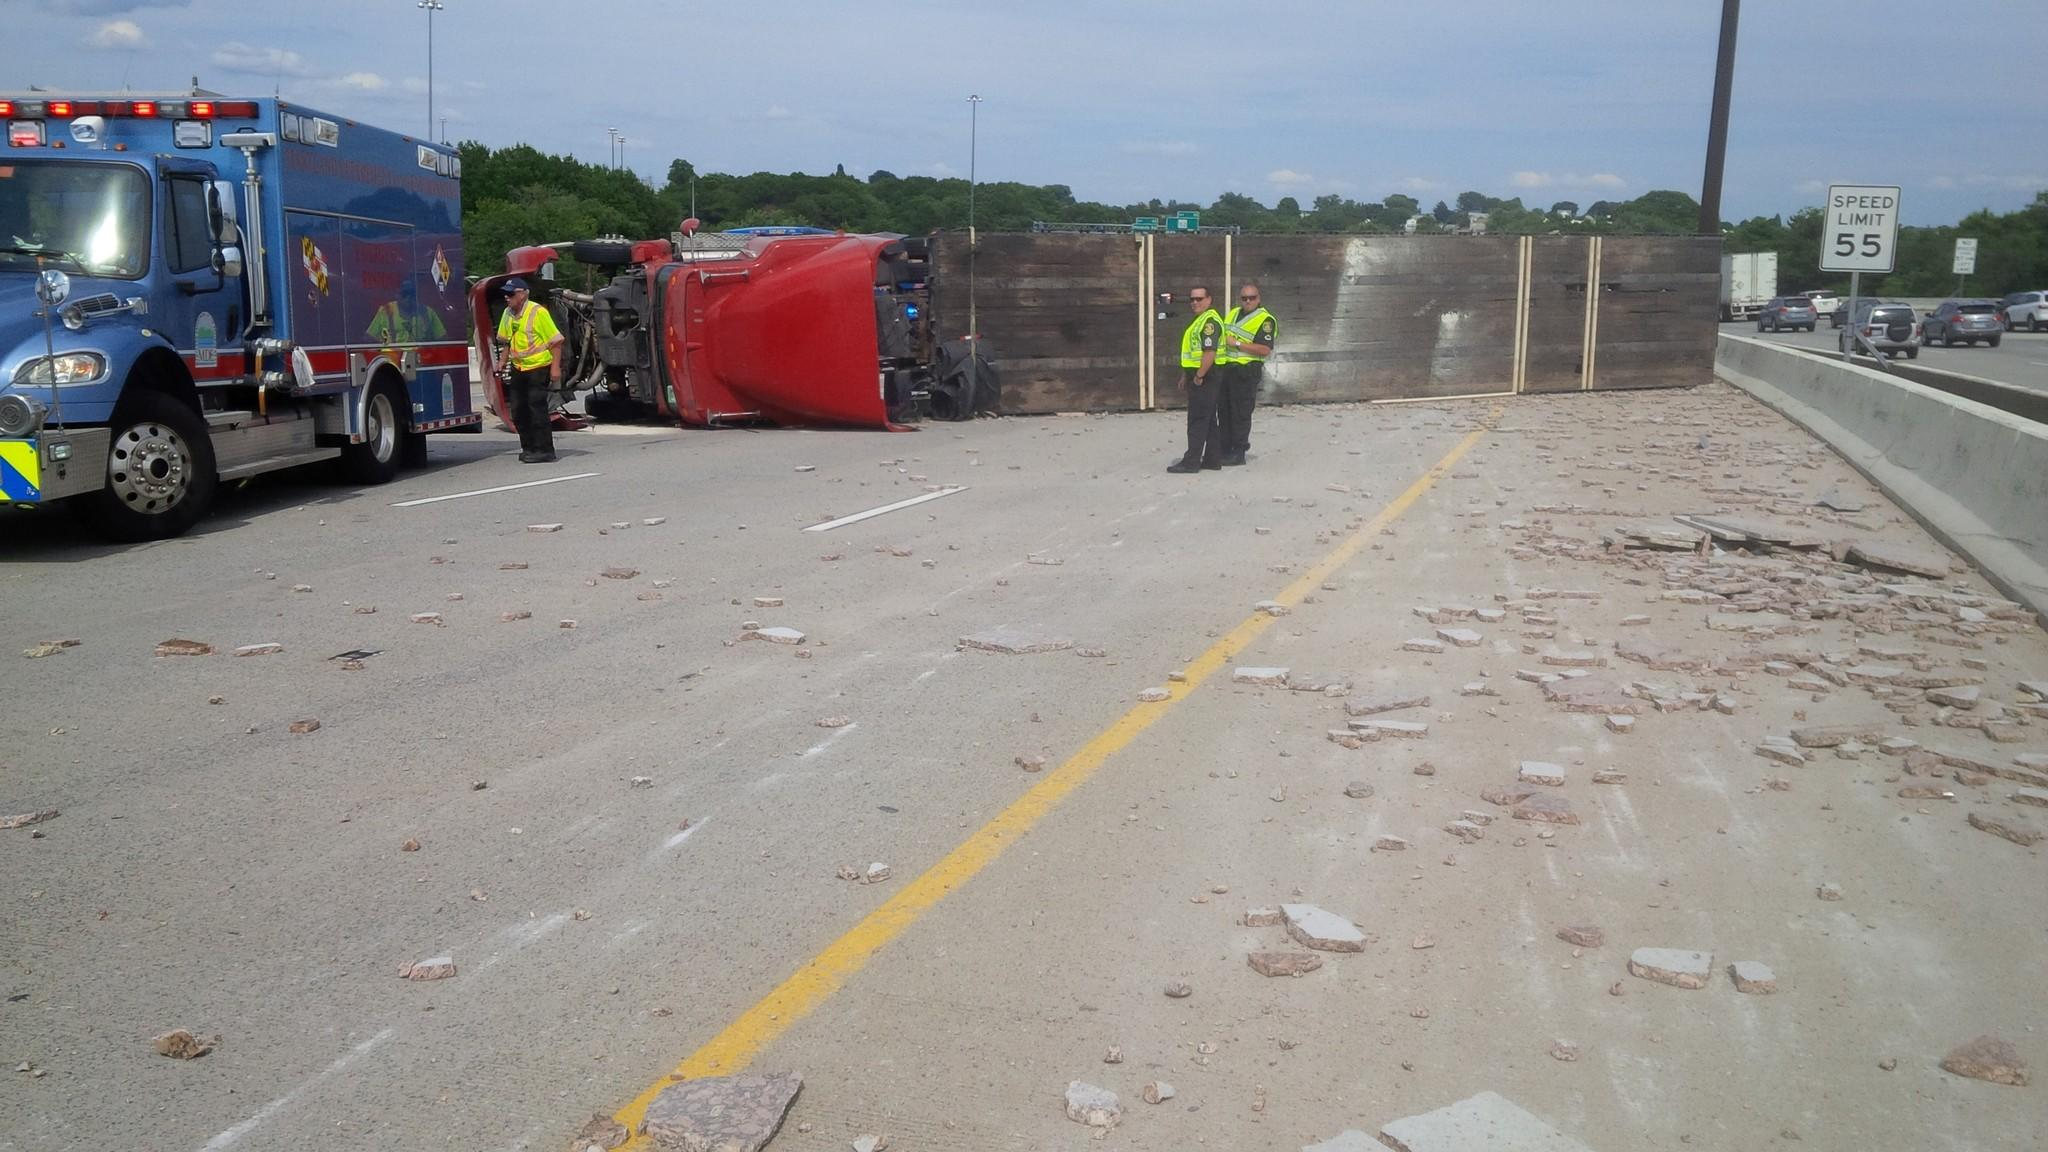 A tractor trailer overturned on Interstate 95 Wednesday afternoon, closing lanes for all southbound traffic just north of the Fort McHenry toll plaza.